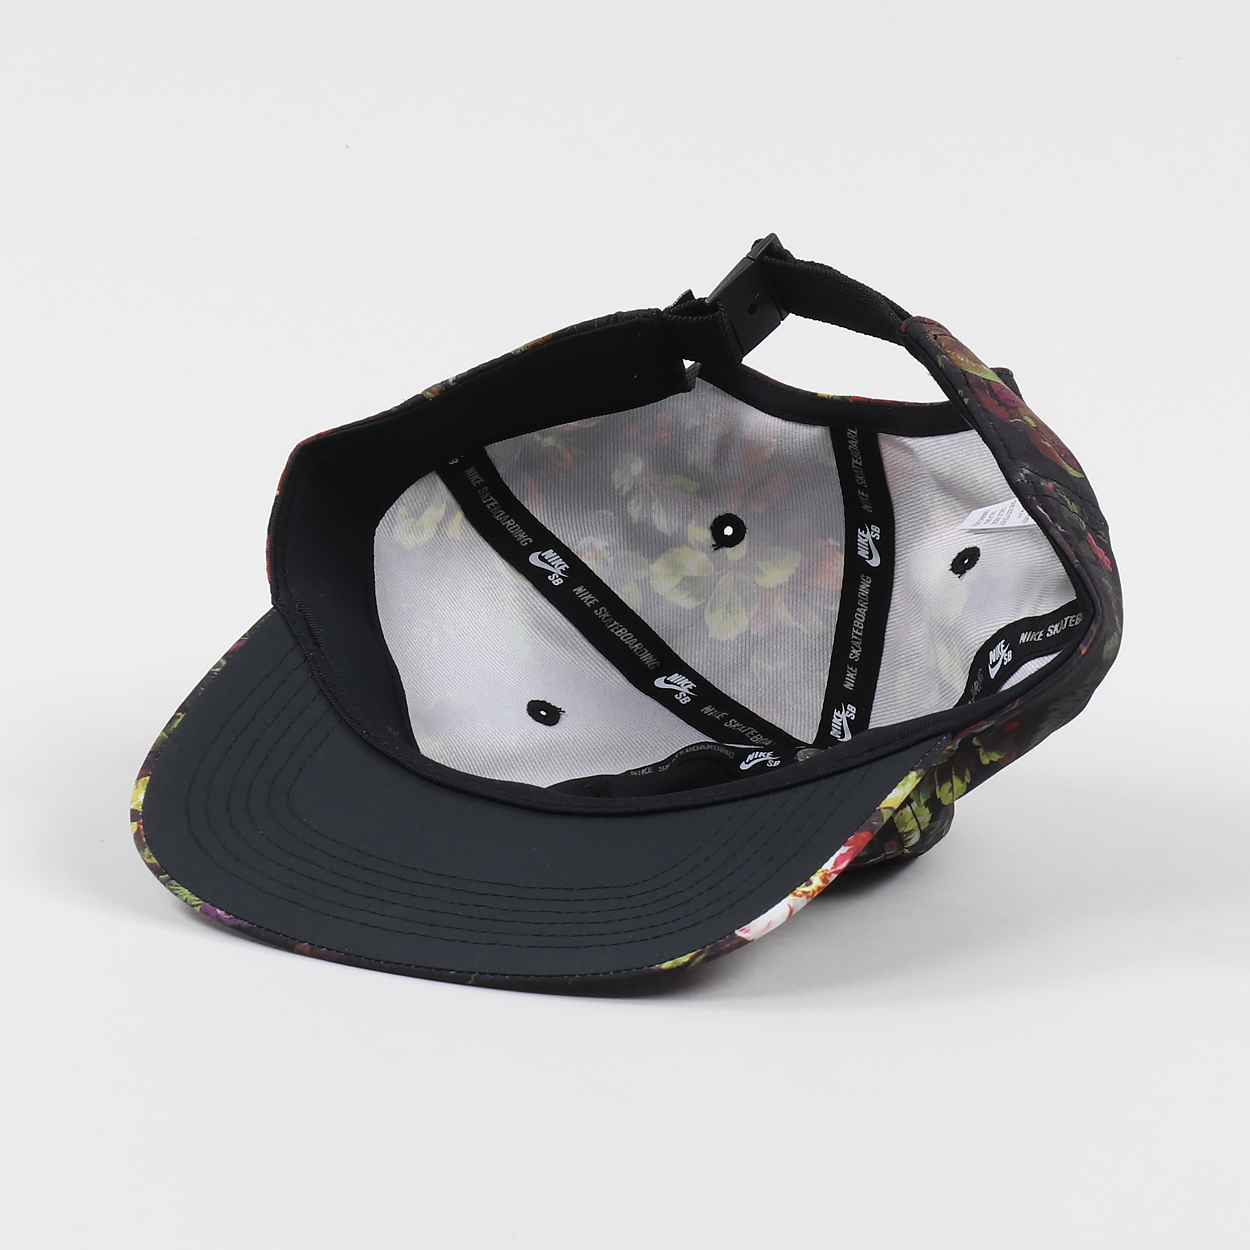 A lightweight sports cap from Nike SB made from 100% polyester with a  padded textile rim and an adjustable strap to the back. It has a floral  design and an ... 0d57e5c6f3f